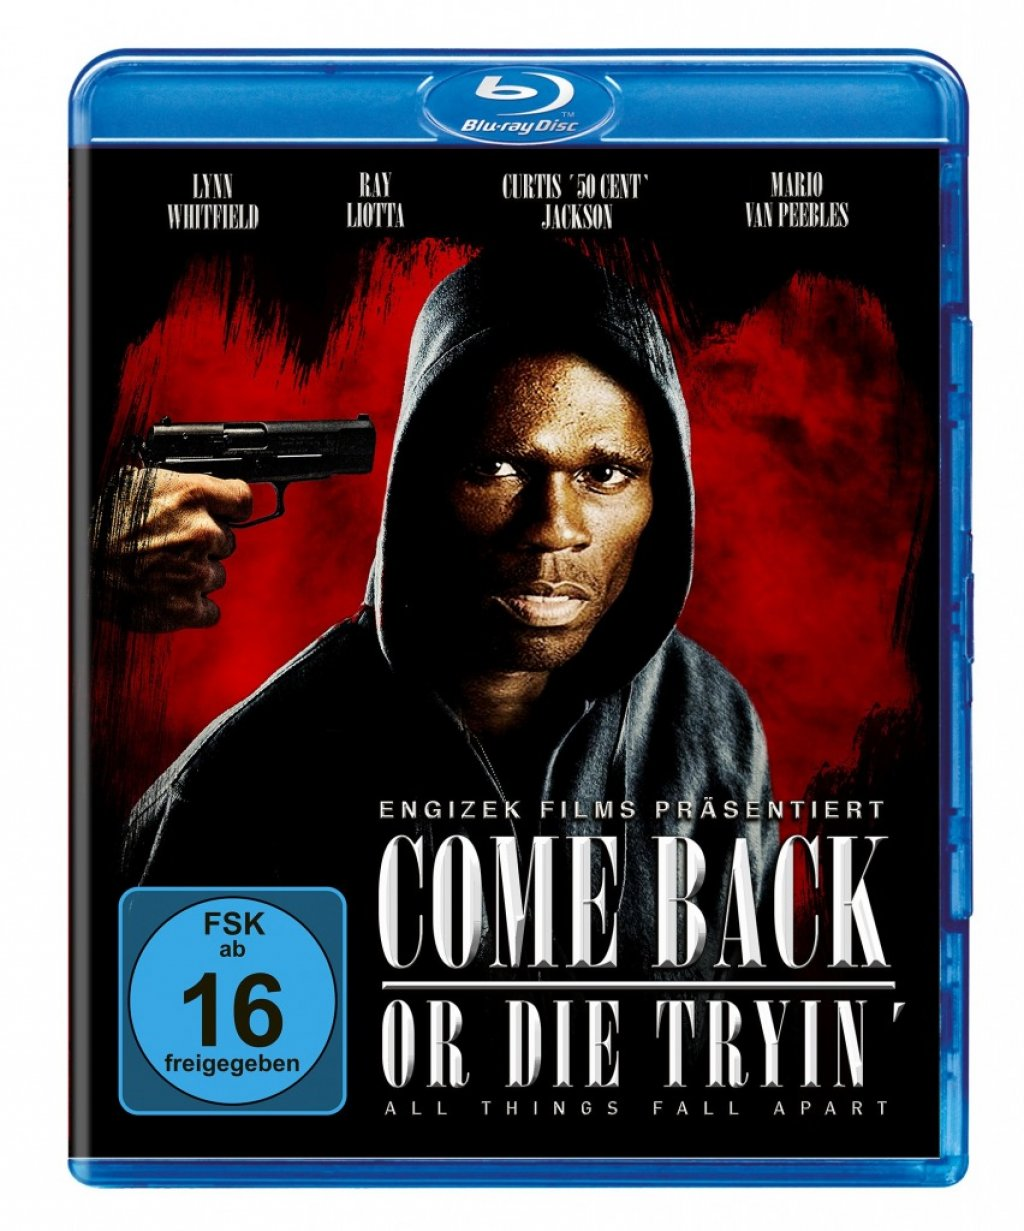 All Things Fall Apart Plot: Come Back Or Die Tryin' (All Things Fall Apart